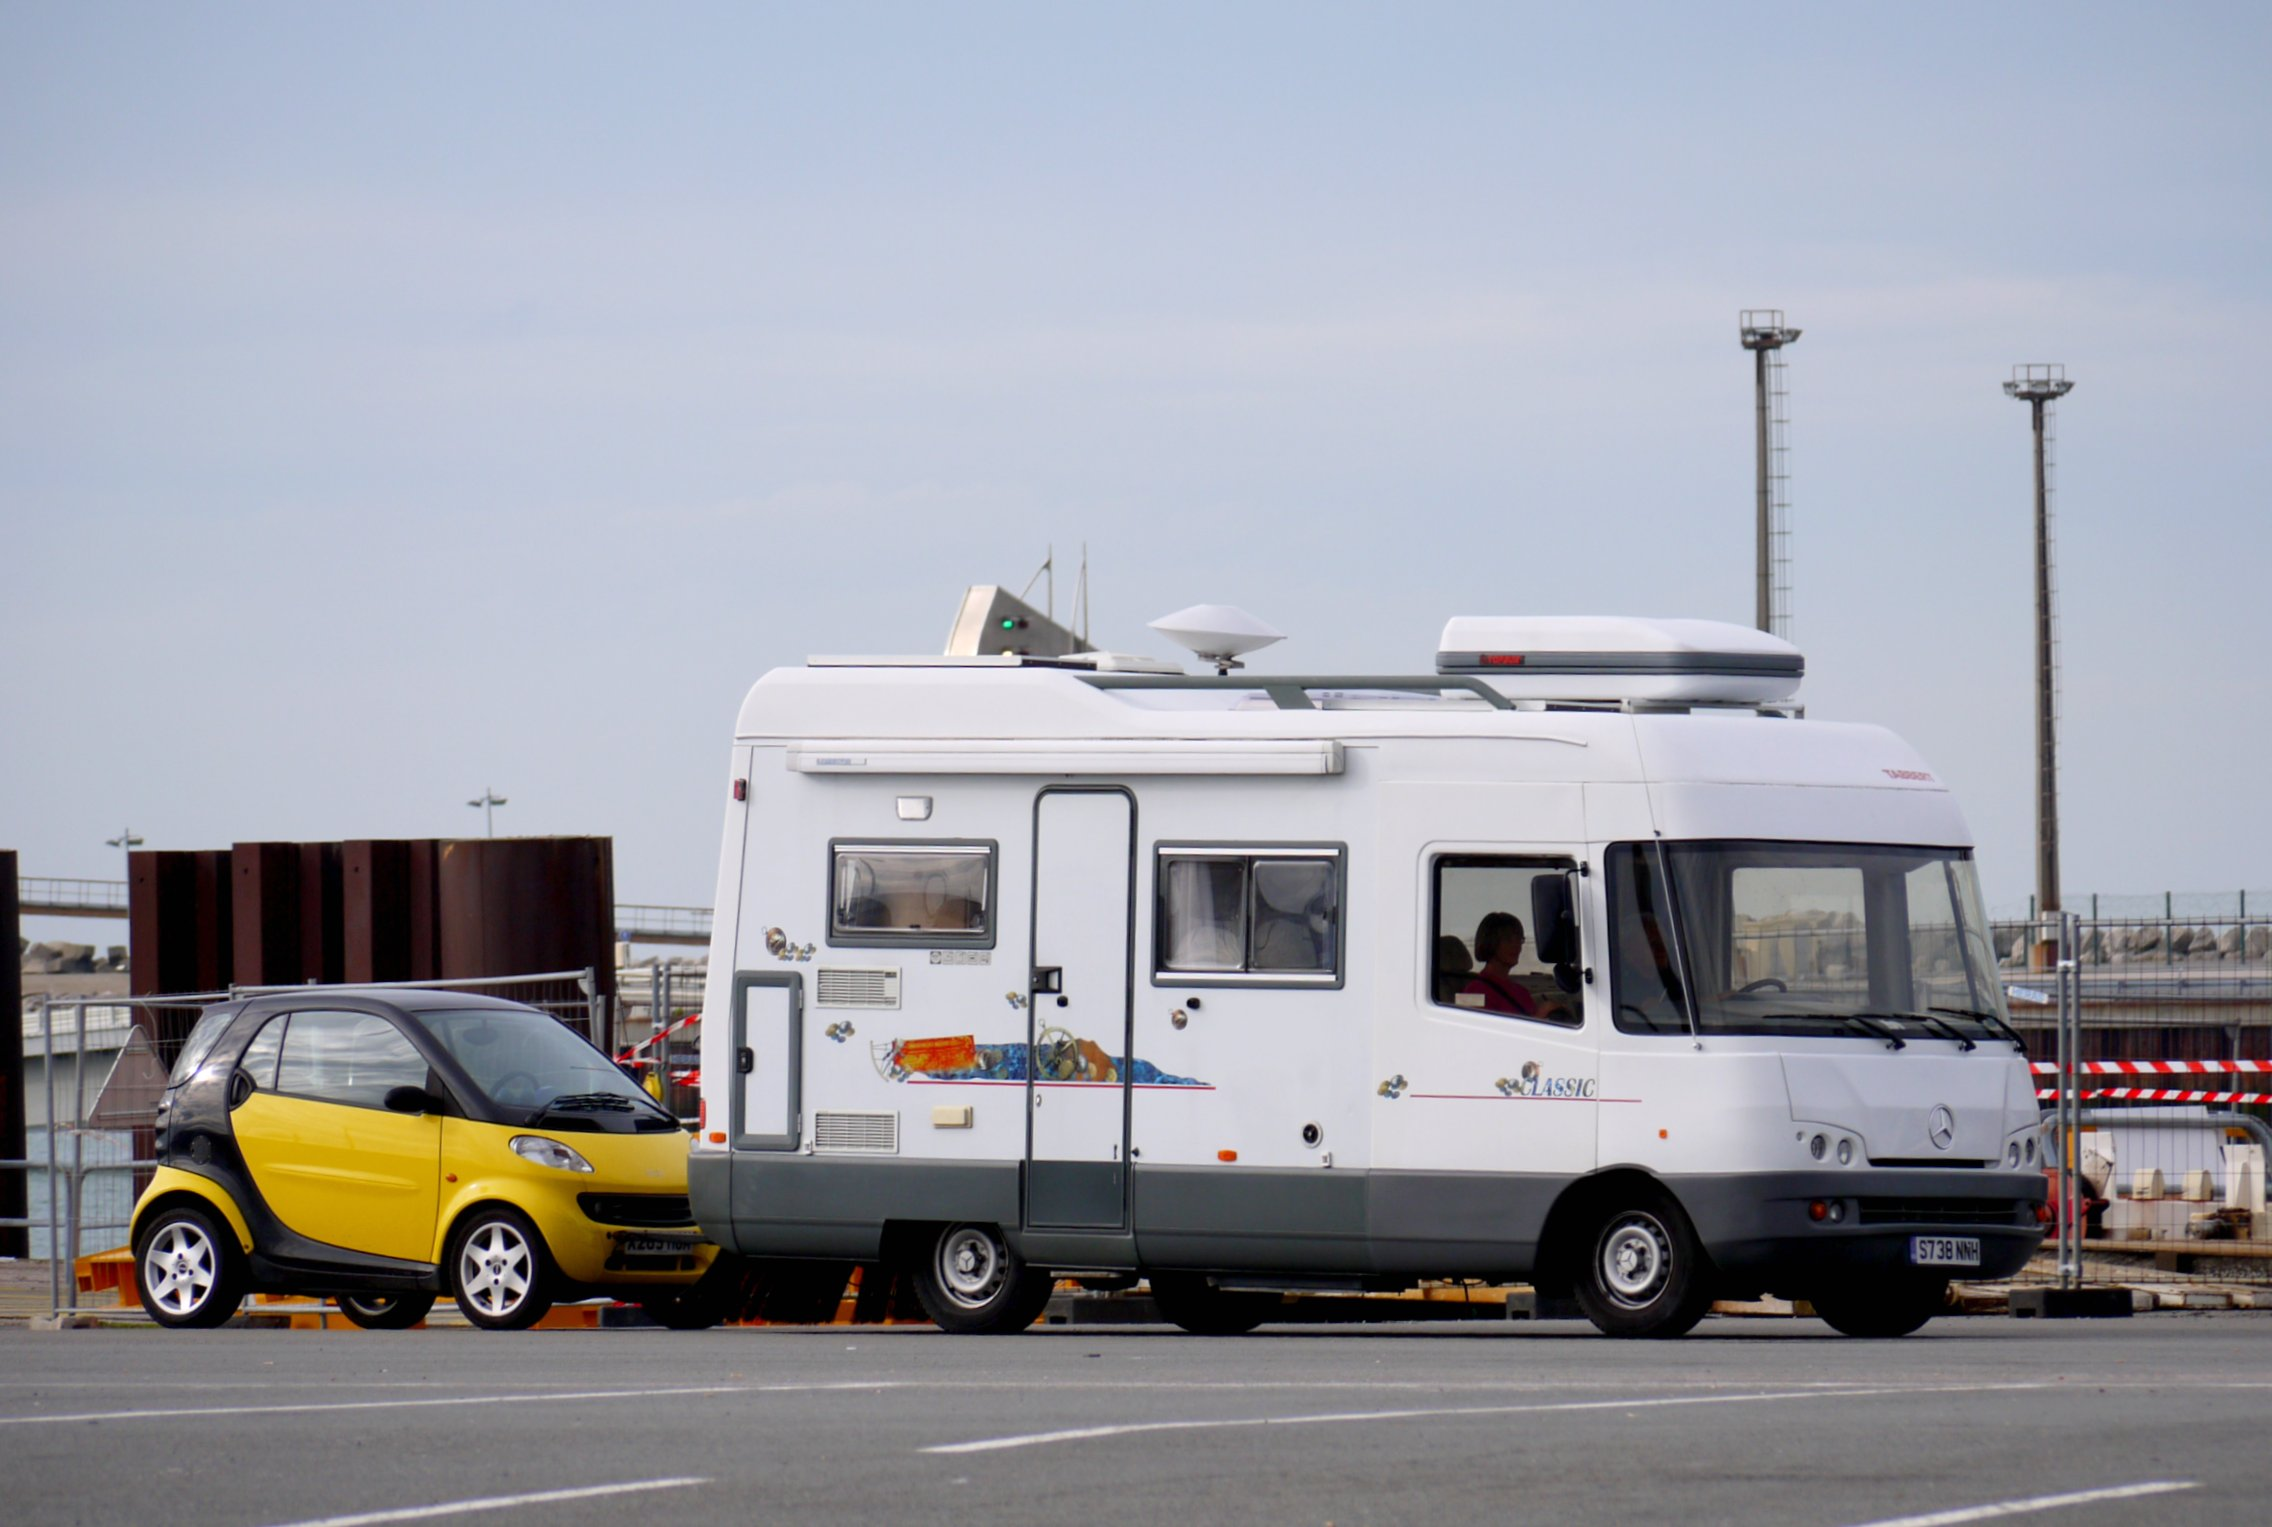 Effective Towing Of Your Vehicle With An RV